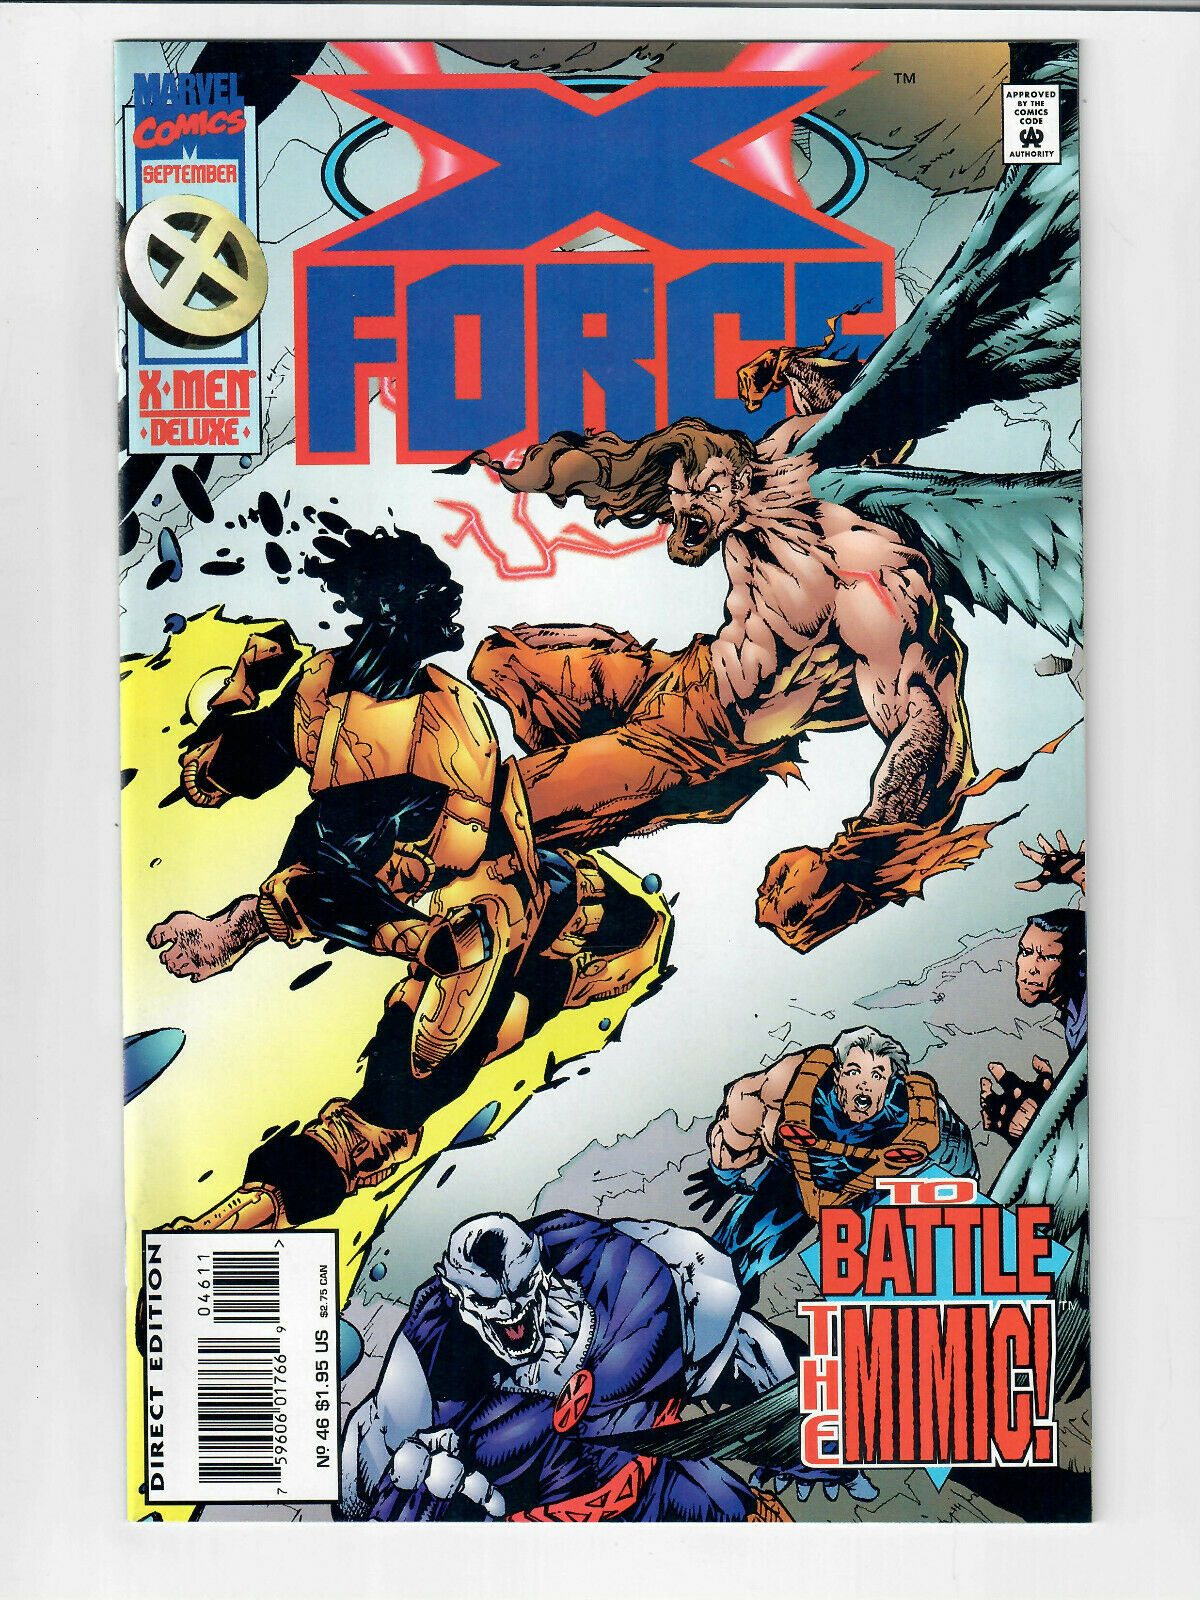 X-FORCE TO BATTLE THE THING #46 SEPT 1995 MARVEL COMIC#119721D-4